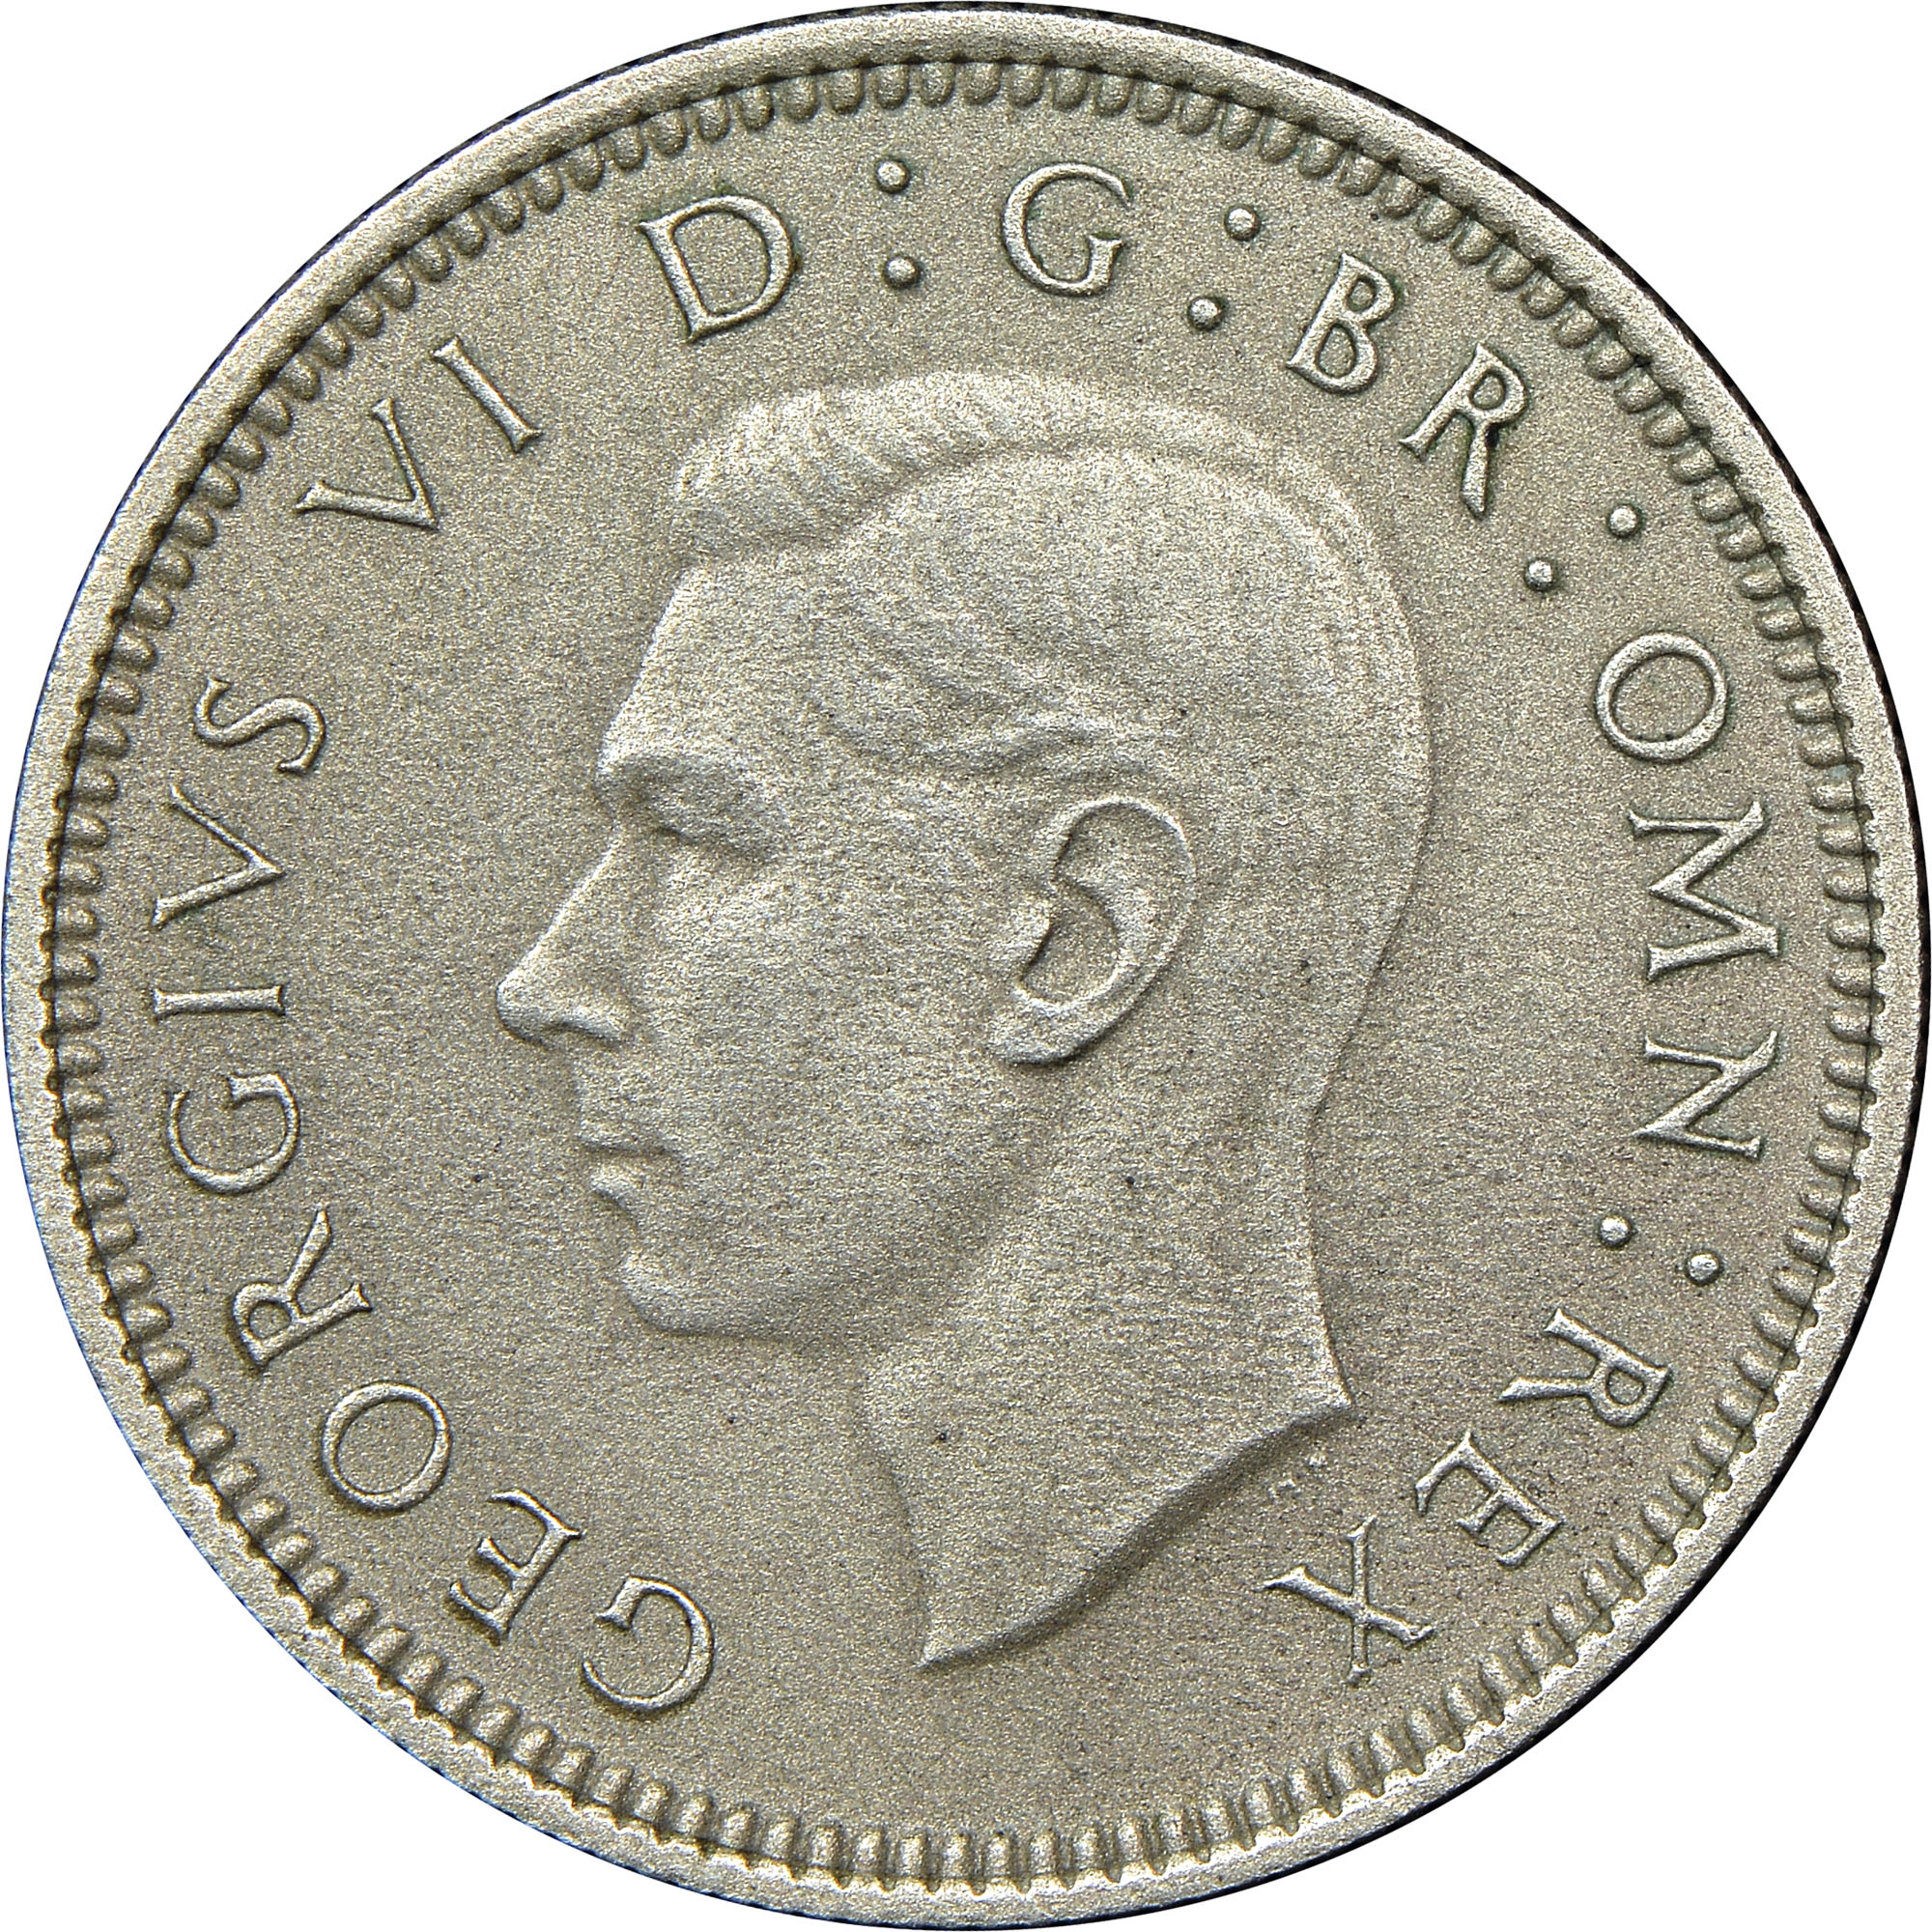 6 pence coin value